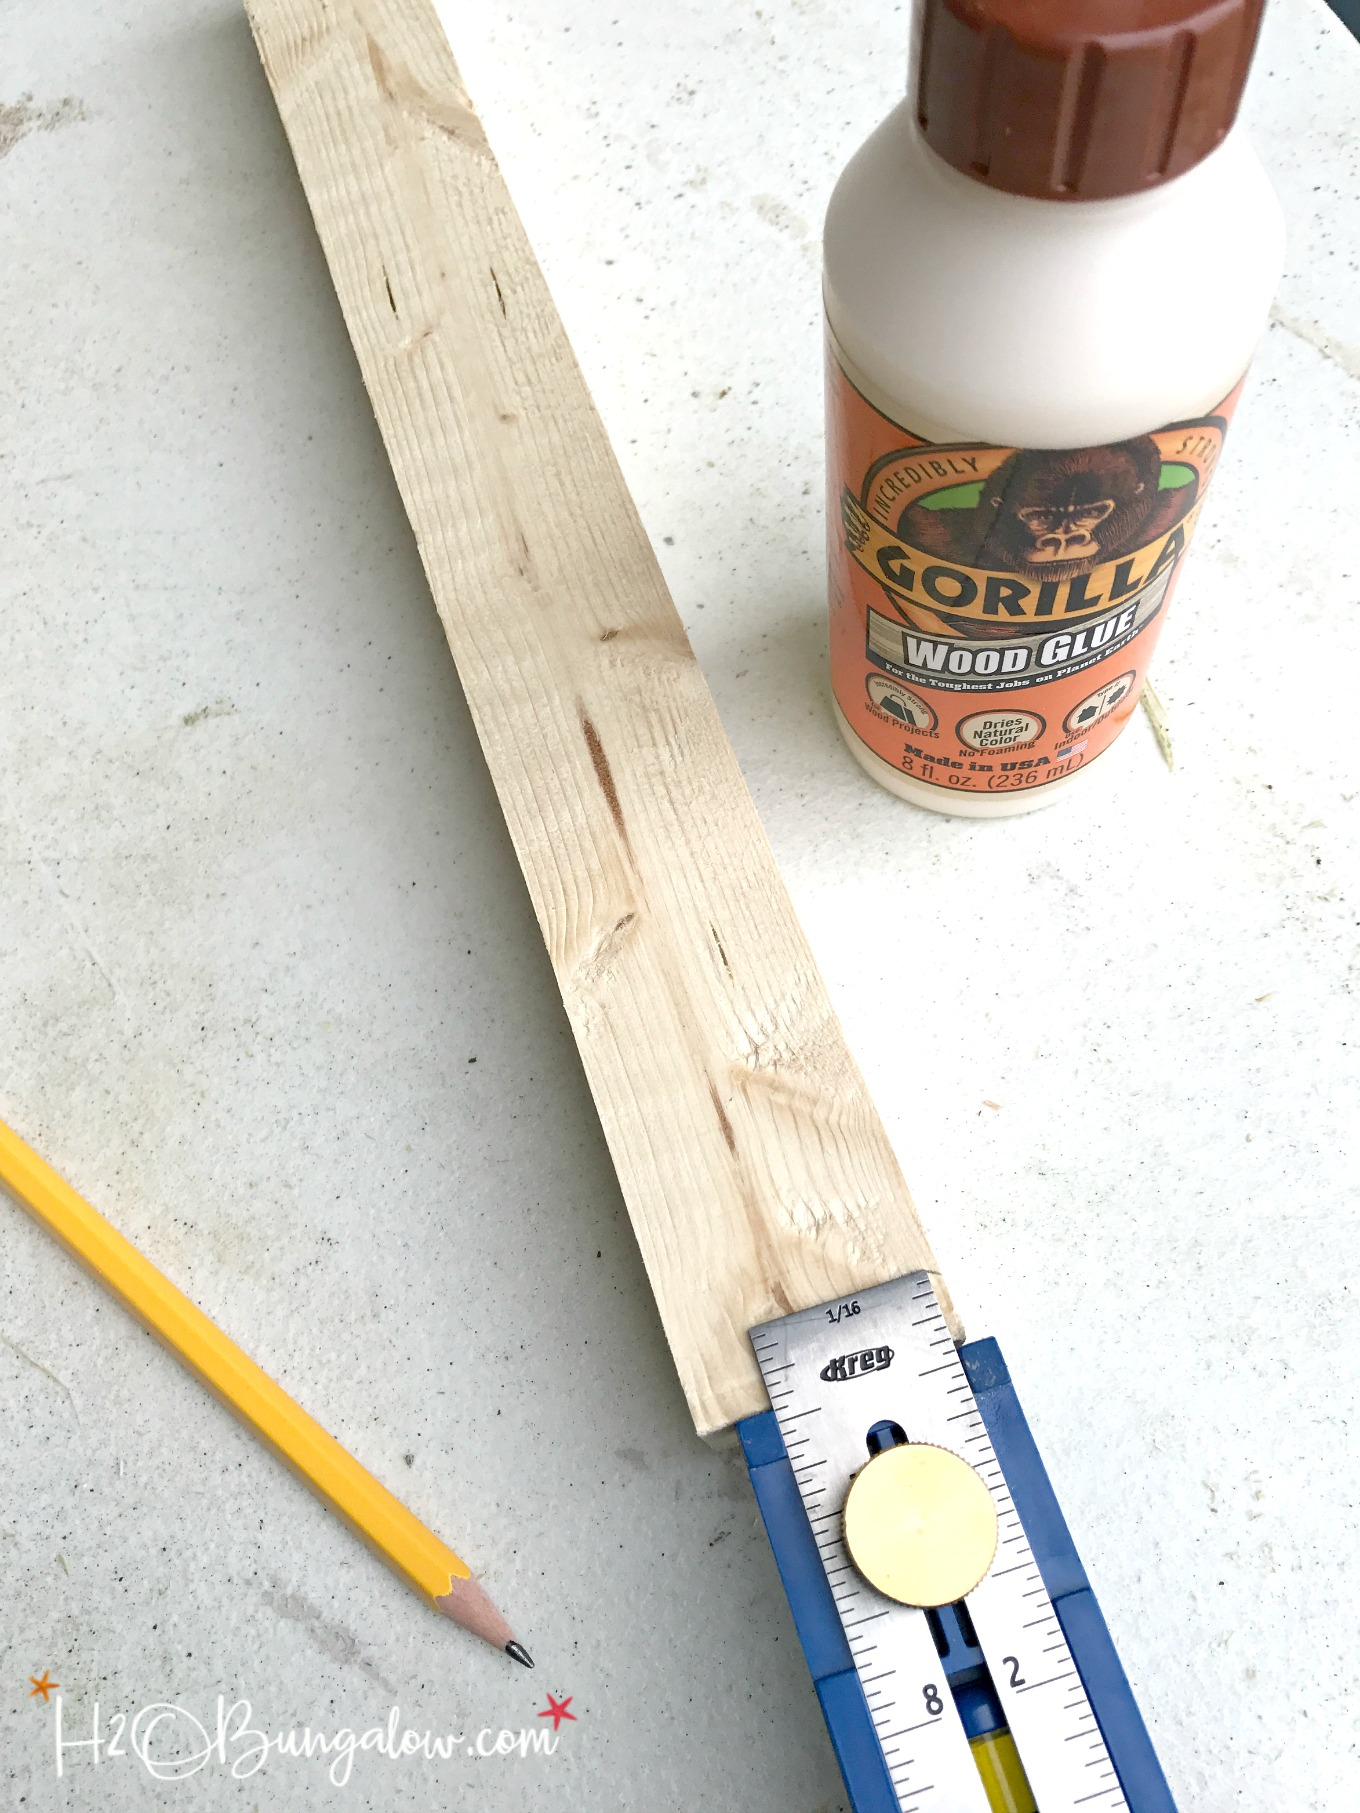 gorilla wood glue shown with pencil and measuring tape